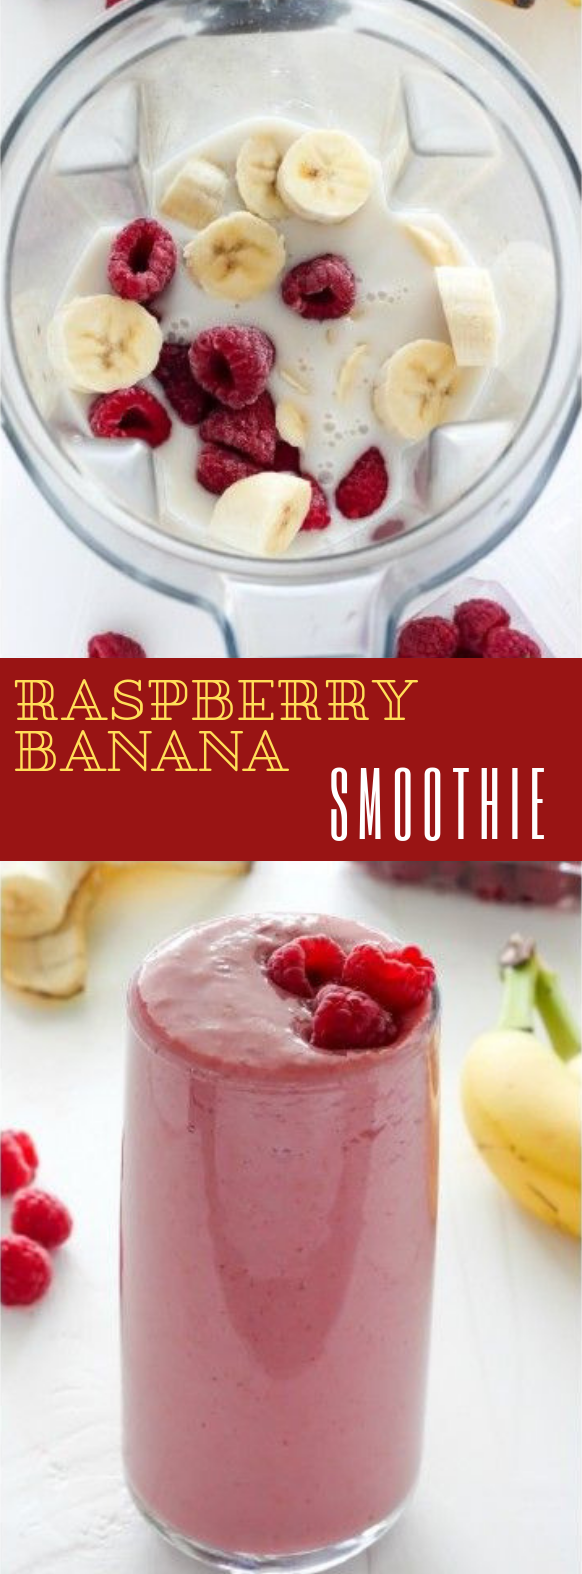 Raspberry Banana Smoothie #drink #smoothie